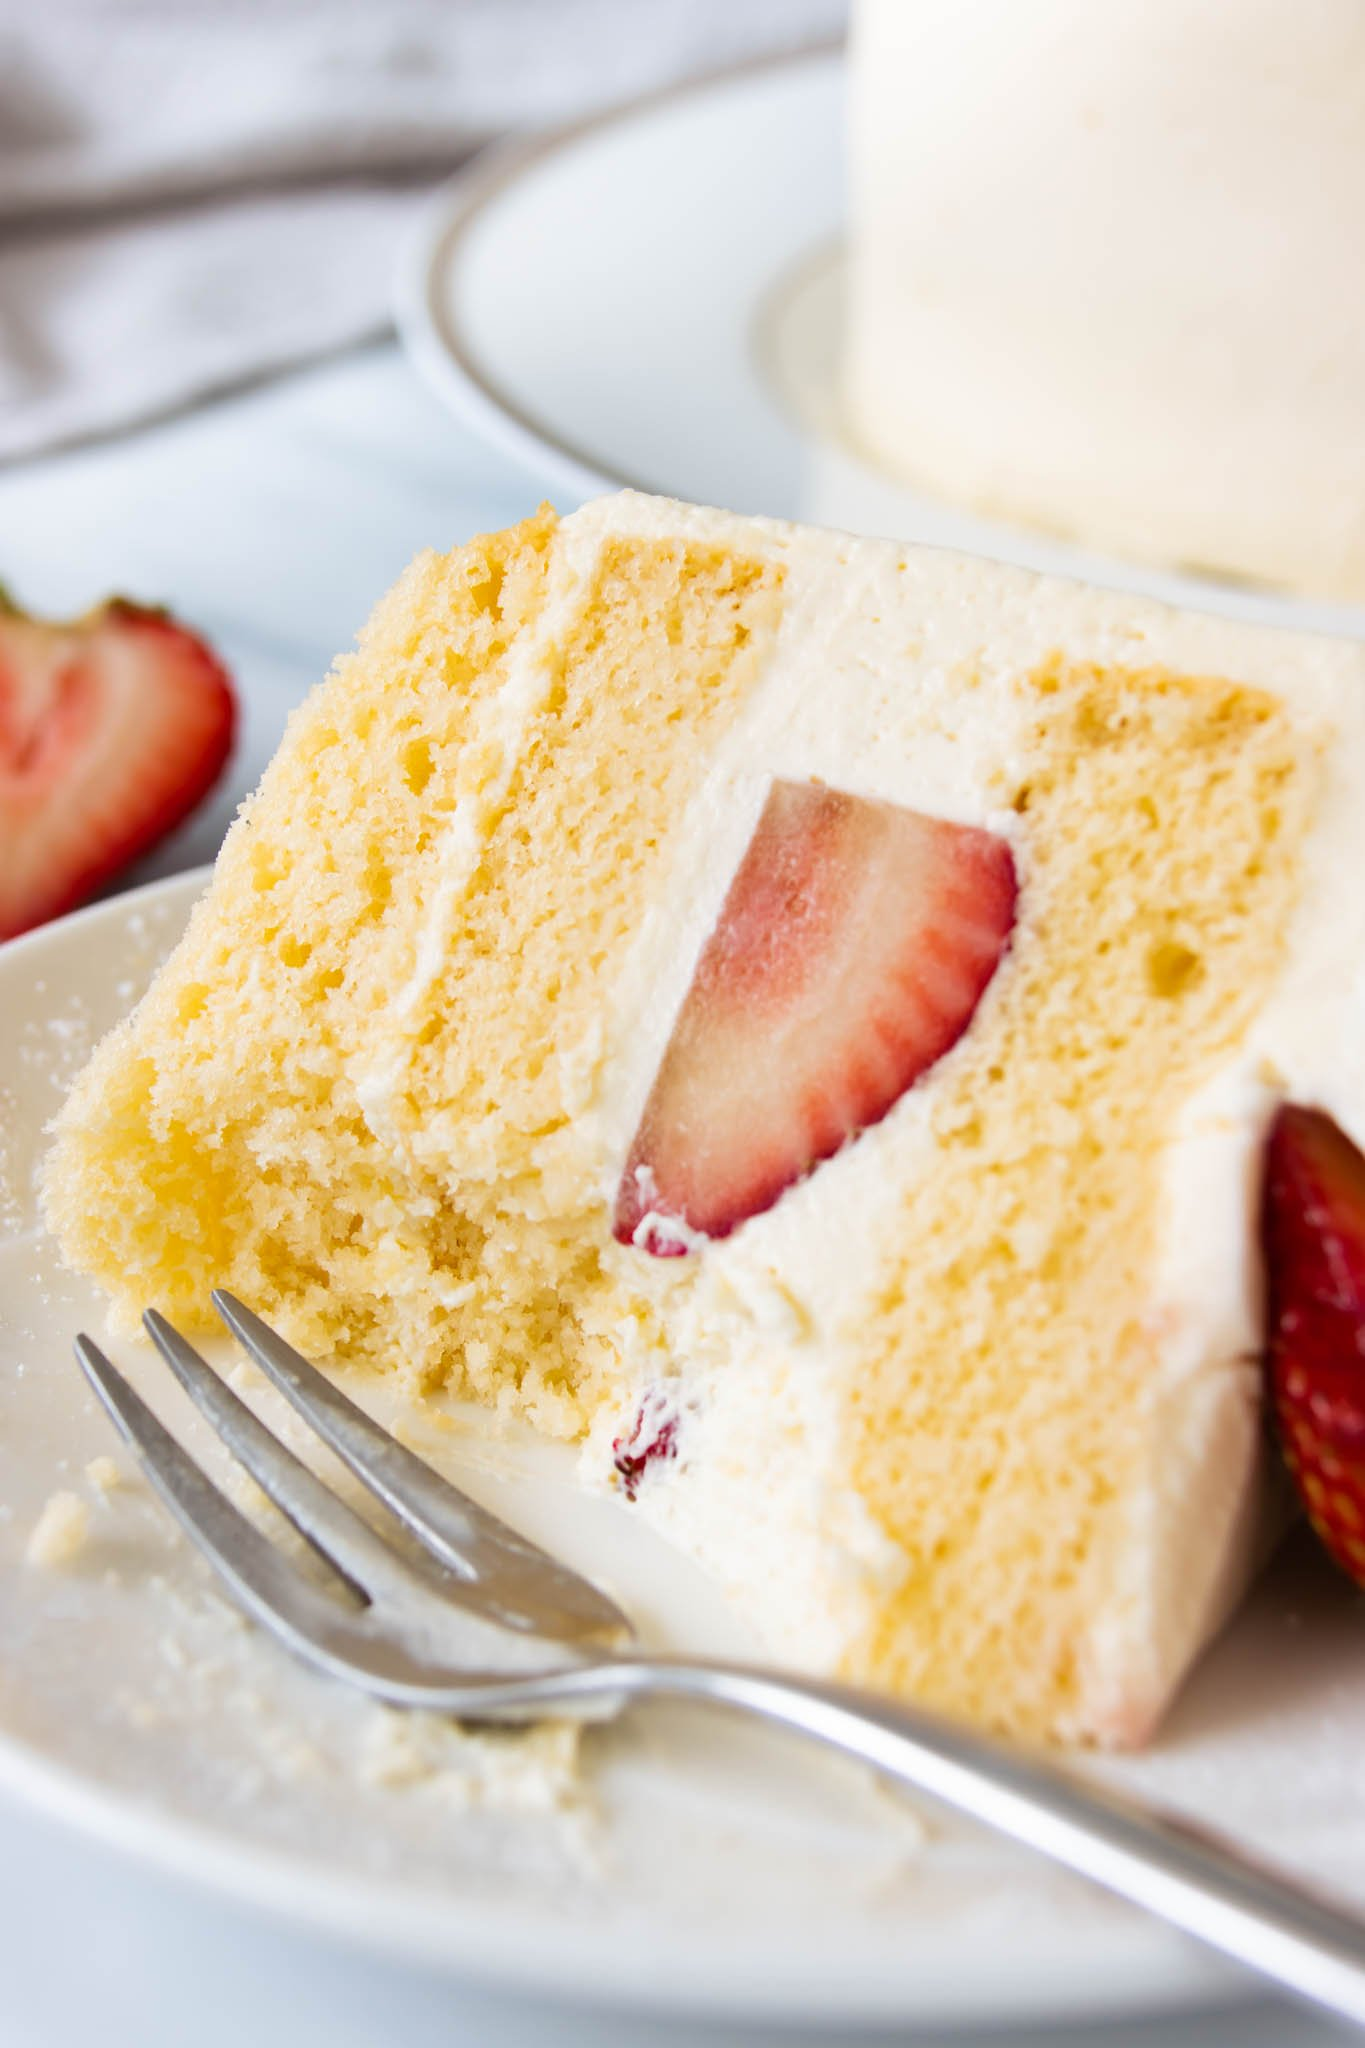 A slice of strawberry shortcake with a moist and delicate crumb